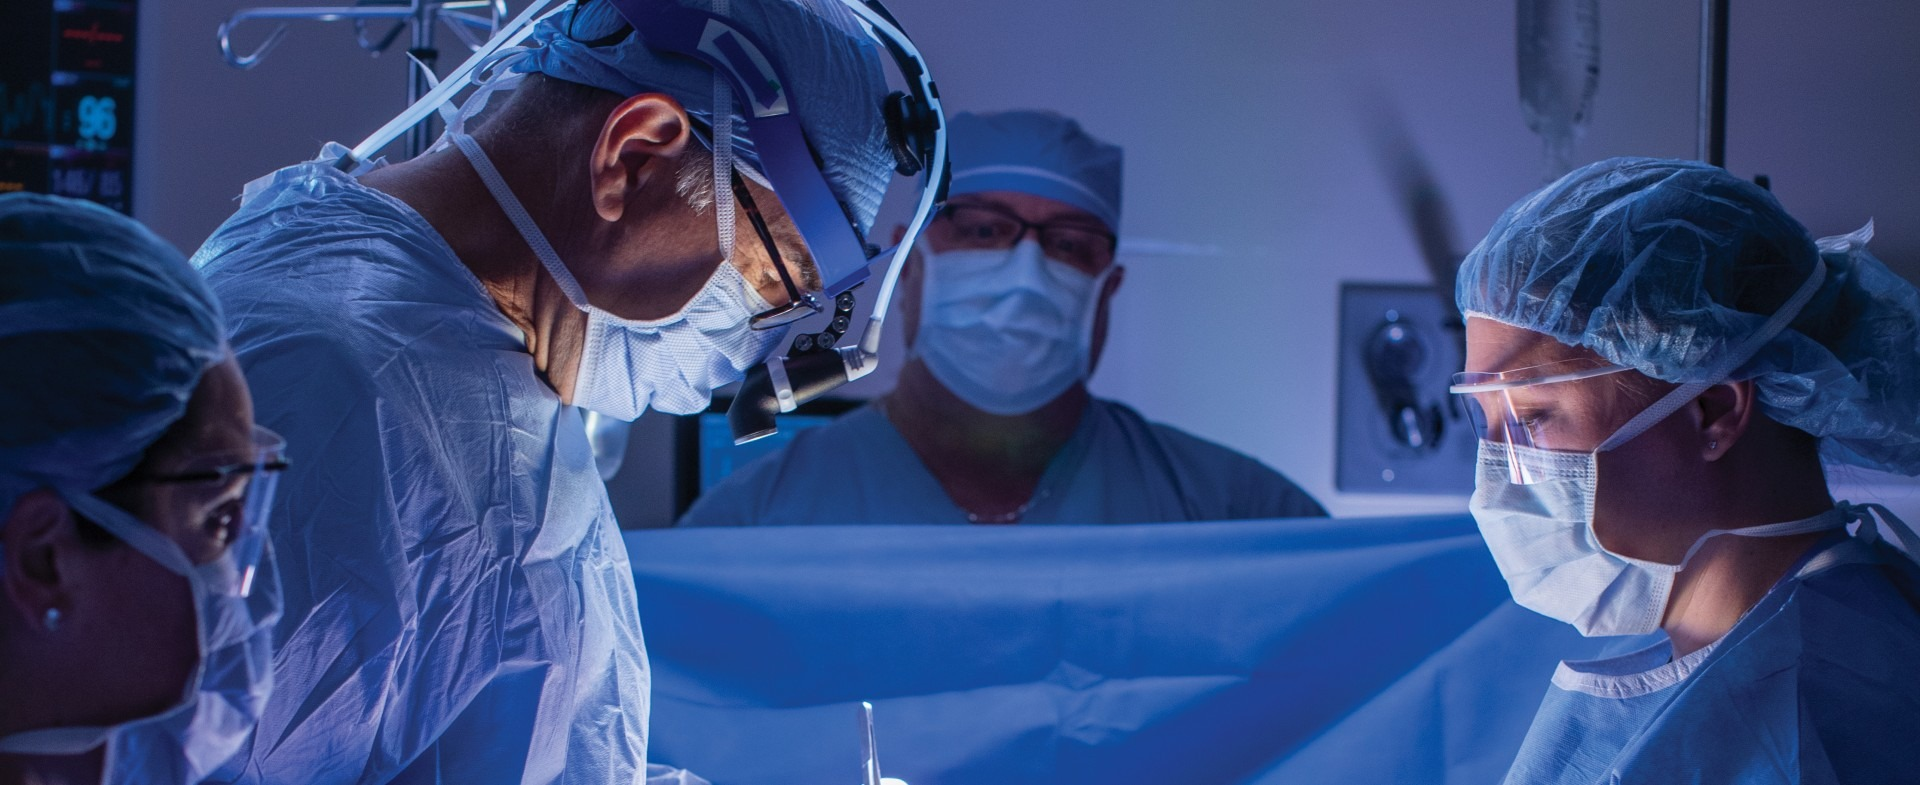 two surgeons, a nurse, and an anesthesiologist performing surgery